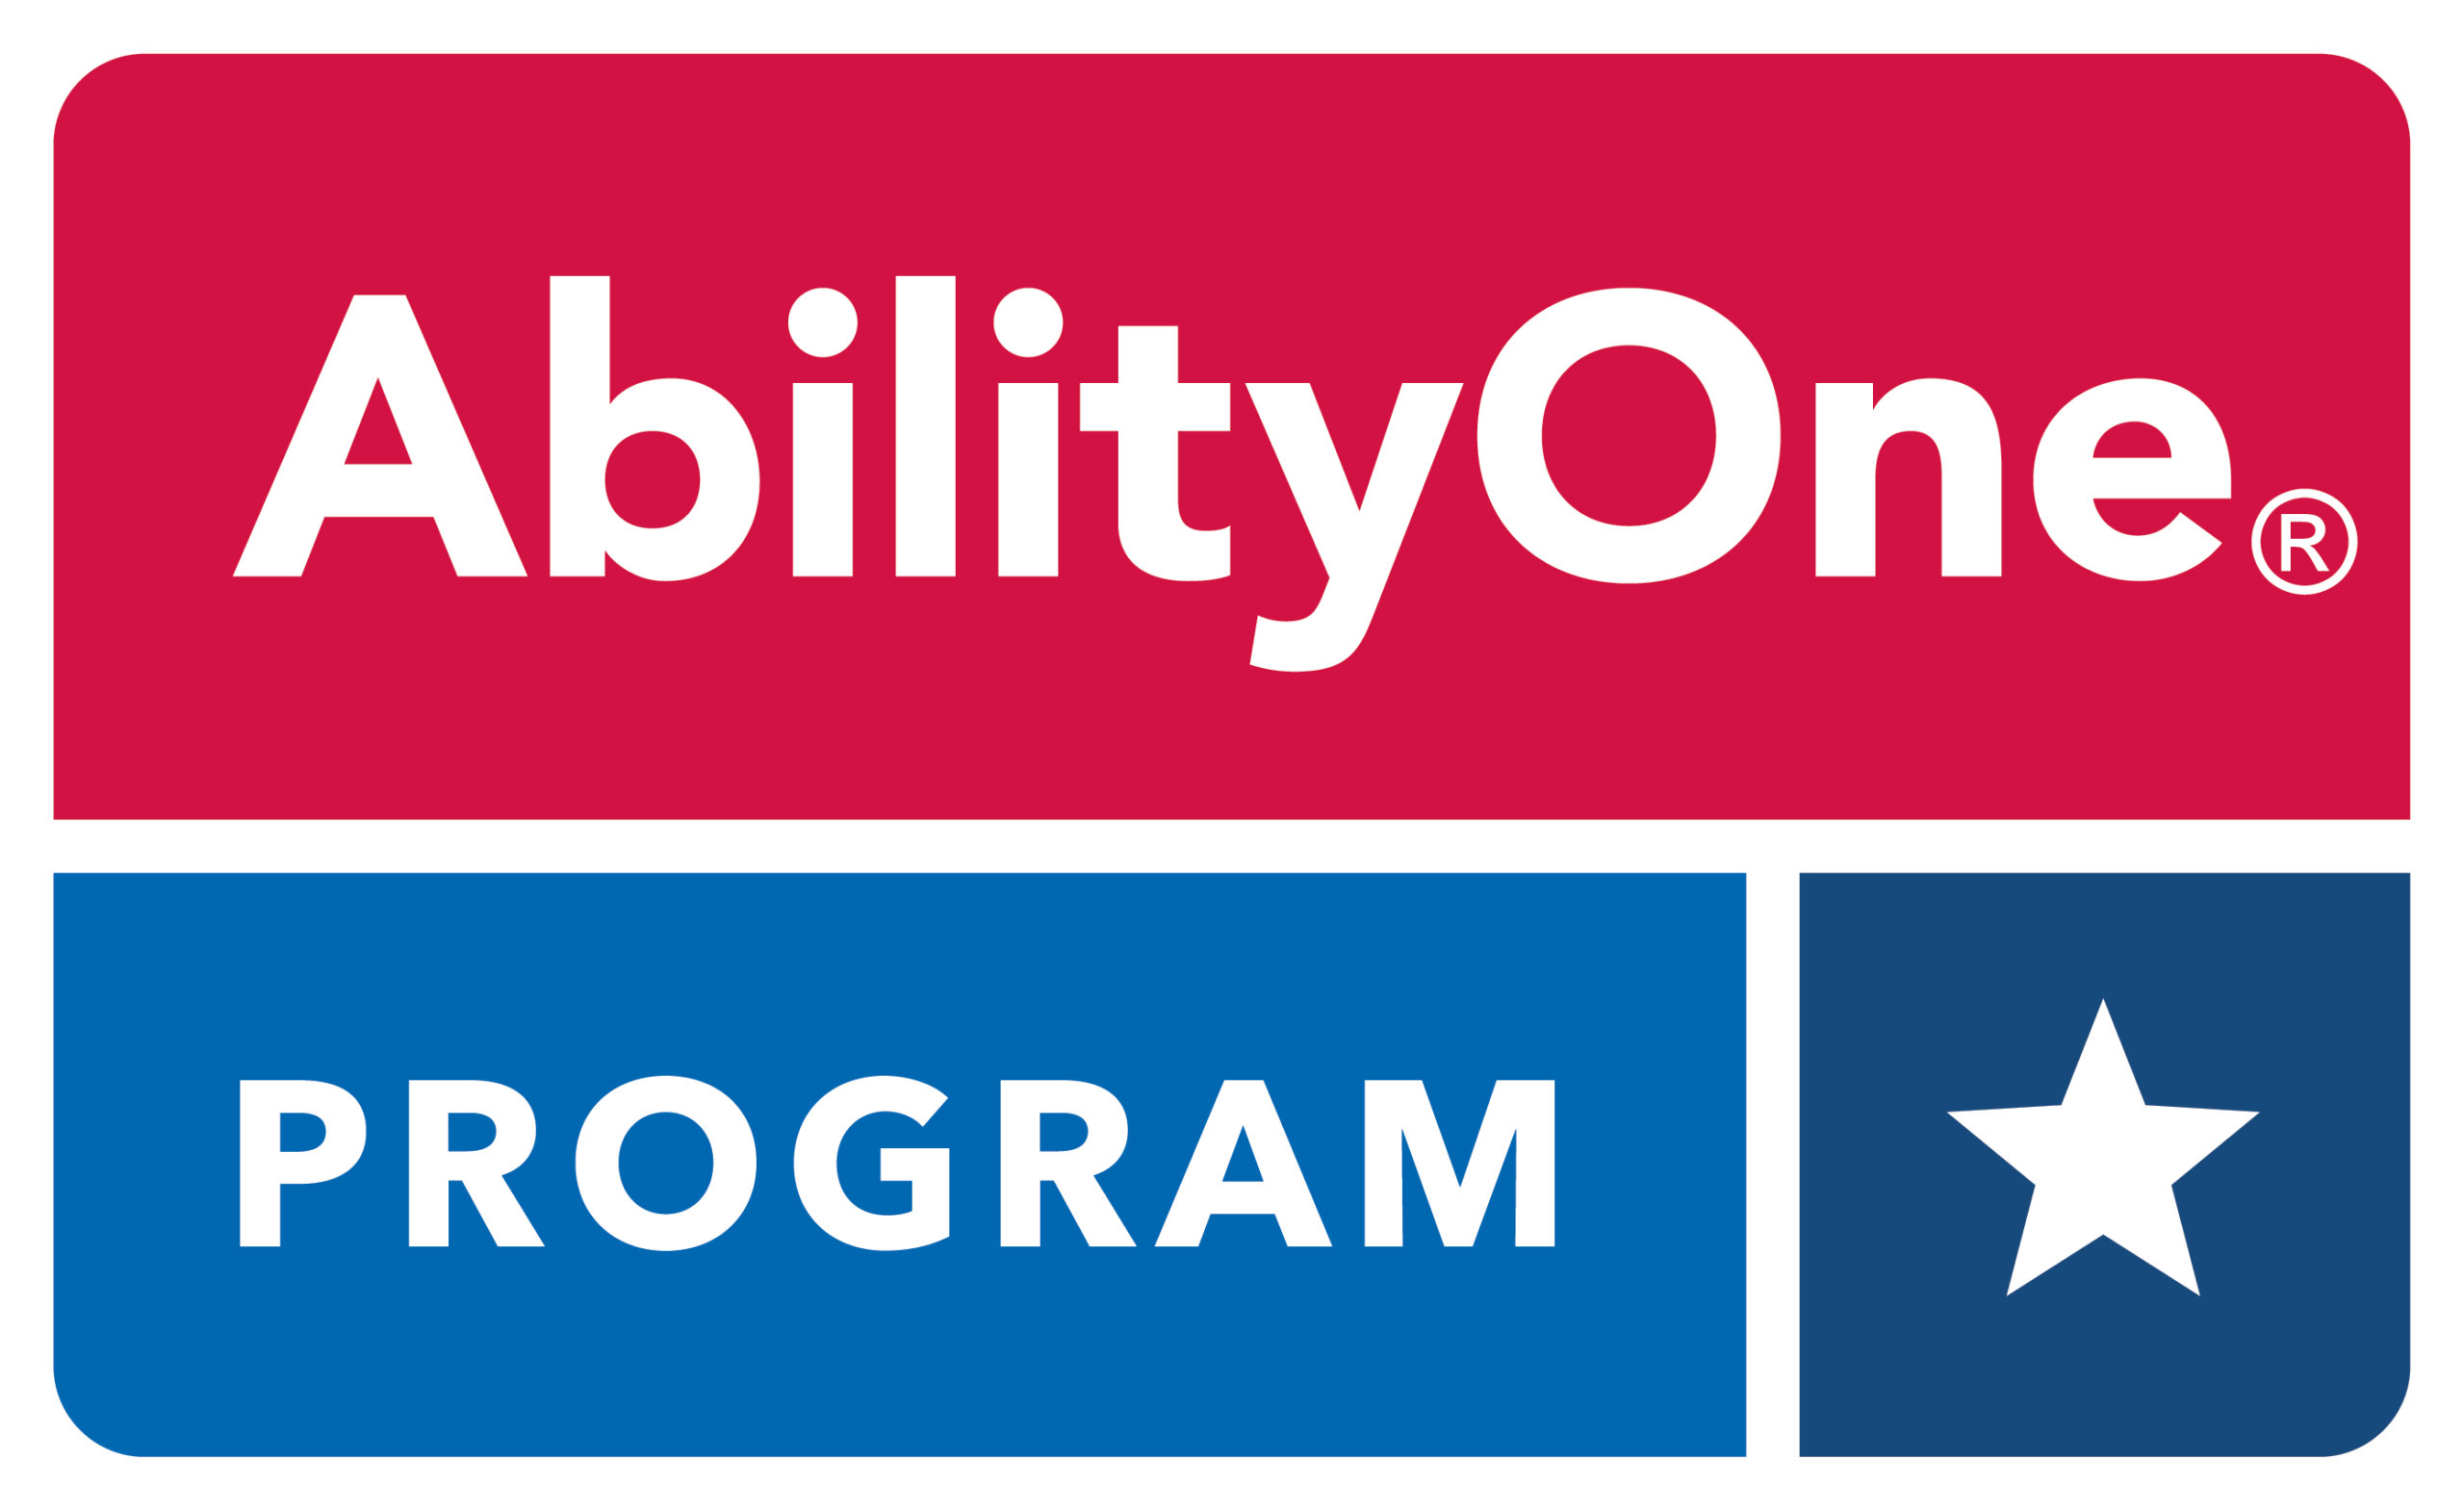 A logo with the word AbilityOne in white on a red background and the word Program and a star in white on a blue background